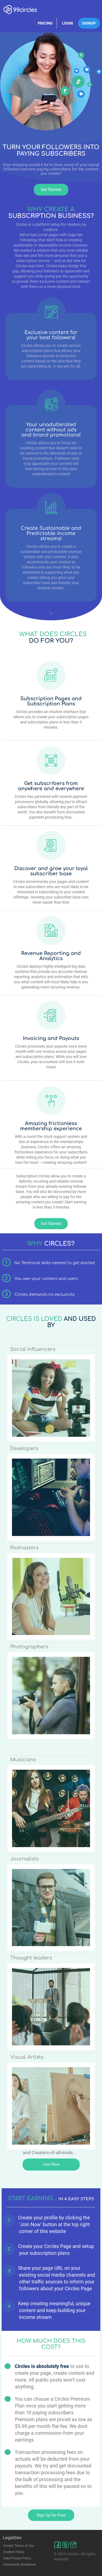 Example of Design for Business & Industrial, Mobile Landing Page by 99circles.com   Mobile Landing Page Design